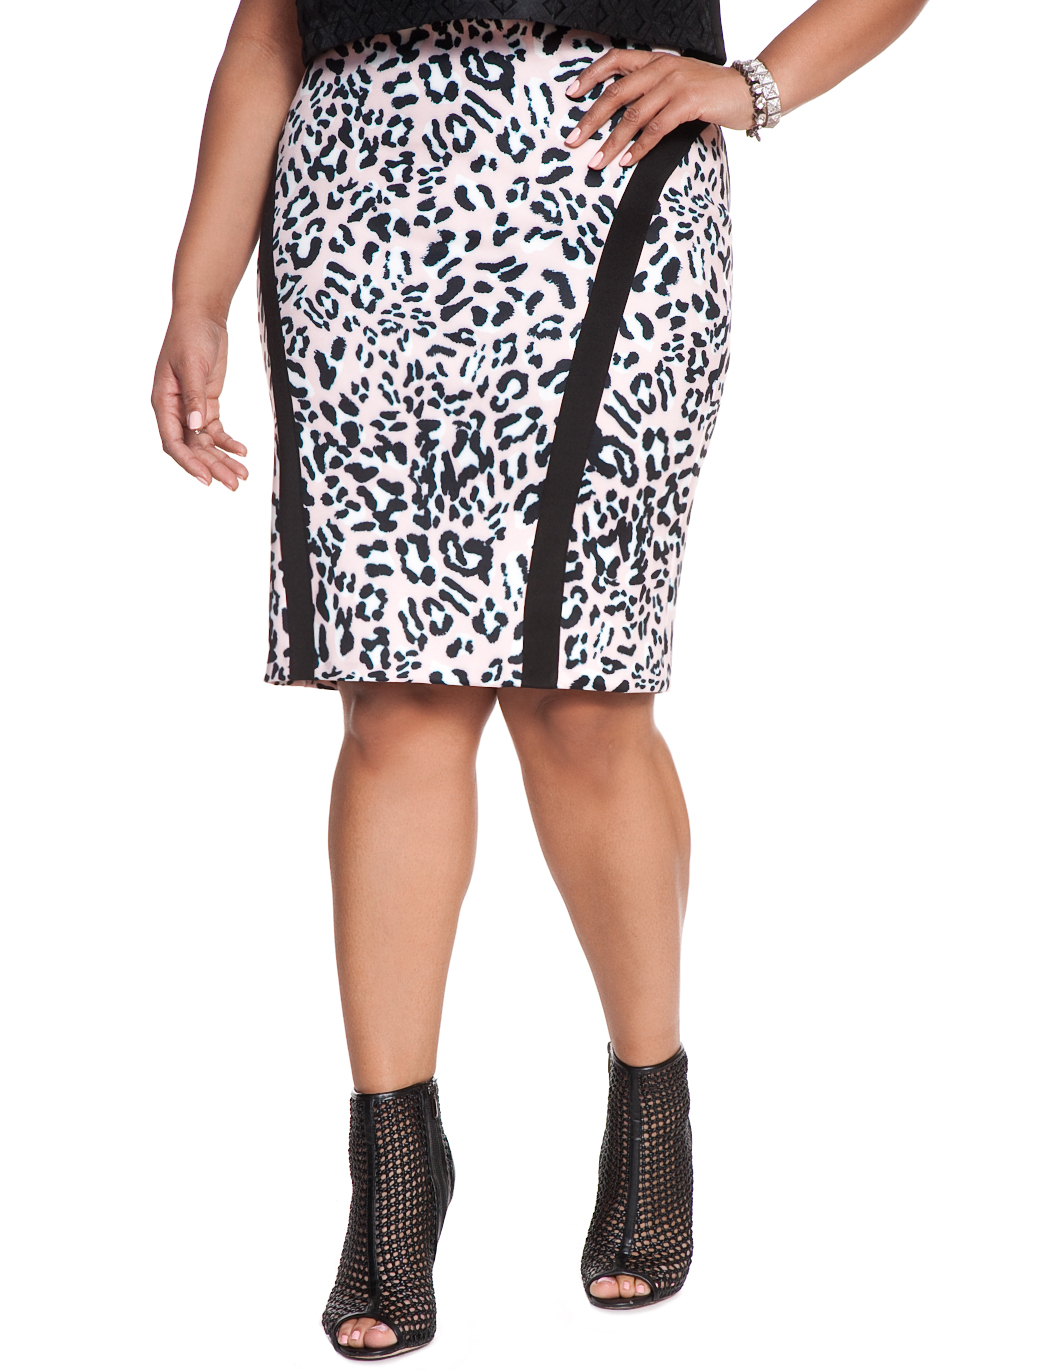 d6d8c5341d5 Animal Print Pencil Skirt